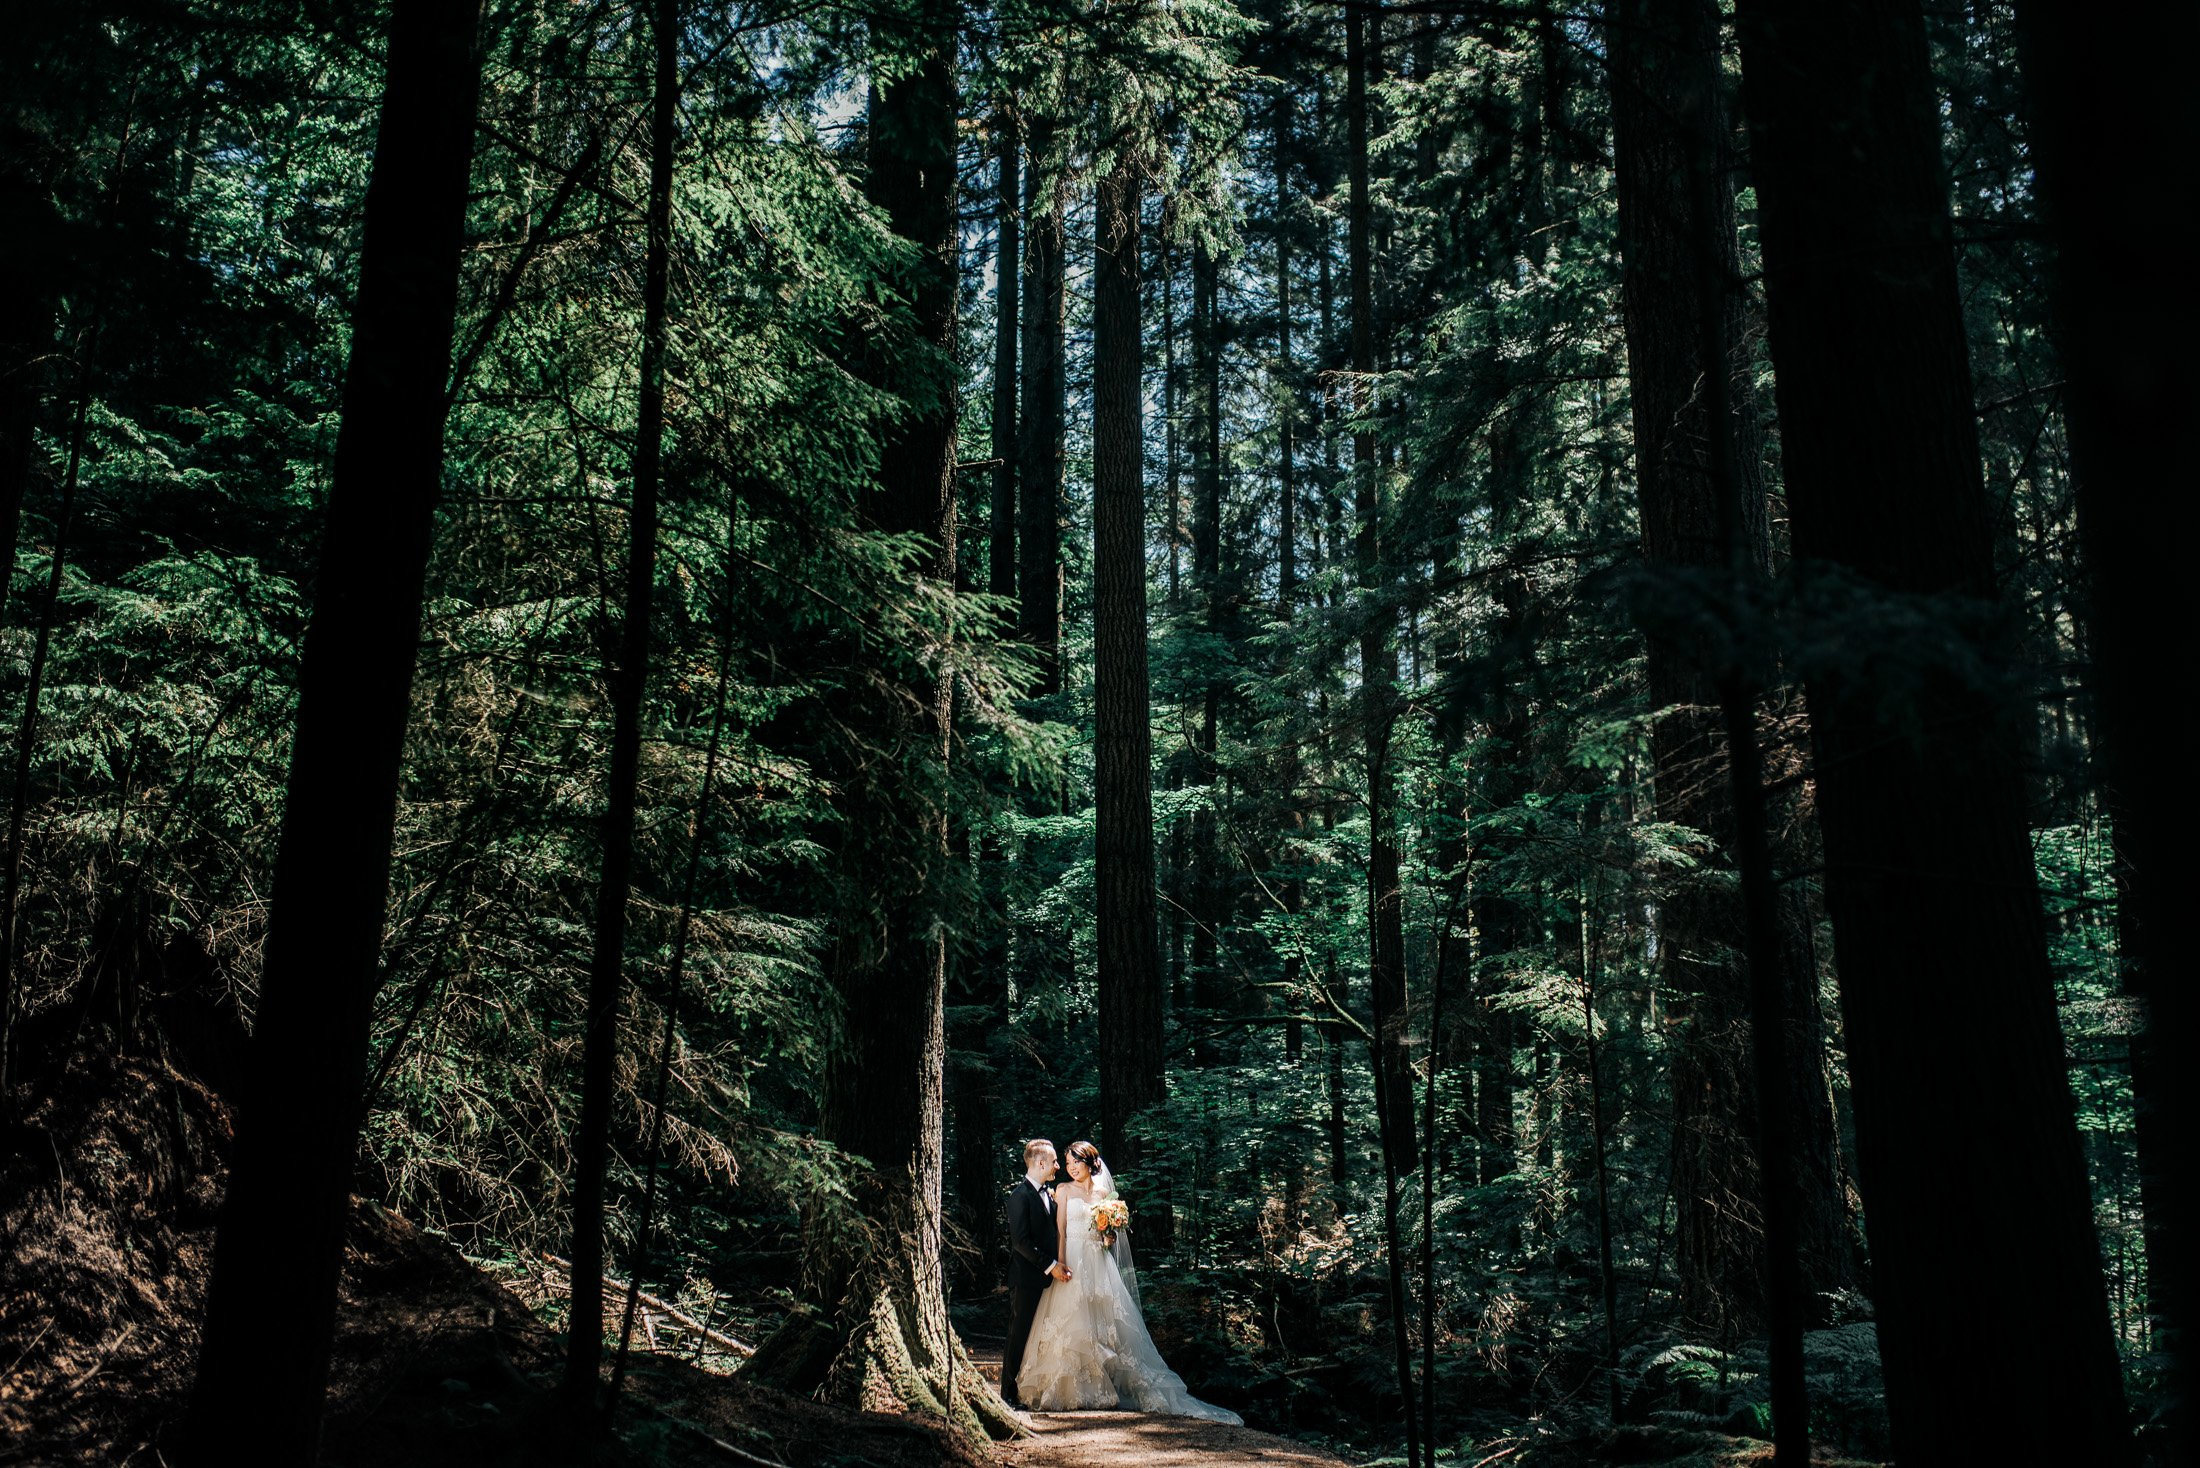 036 - wedding photos in vancouver forest